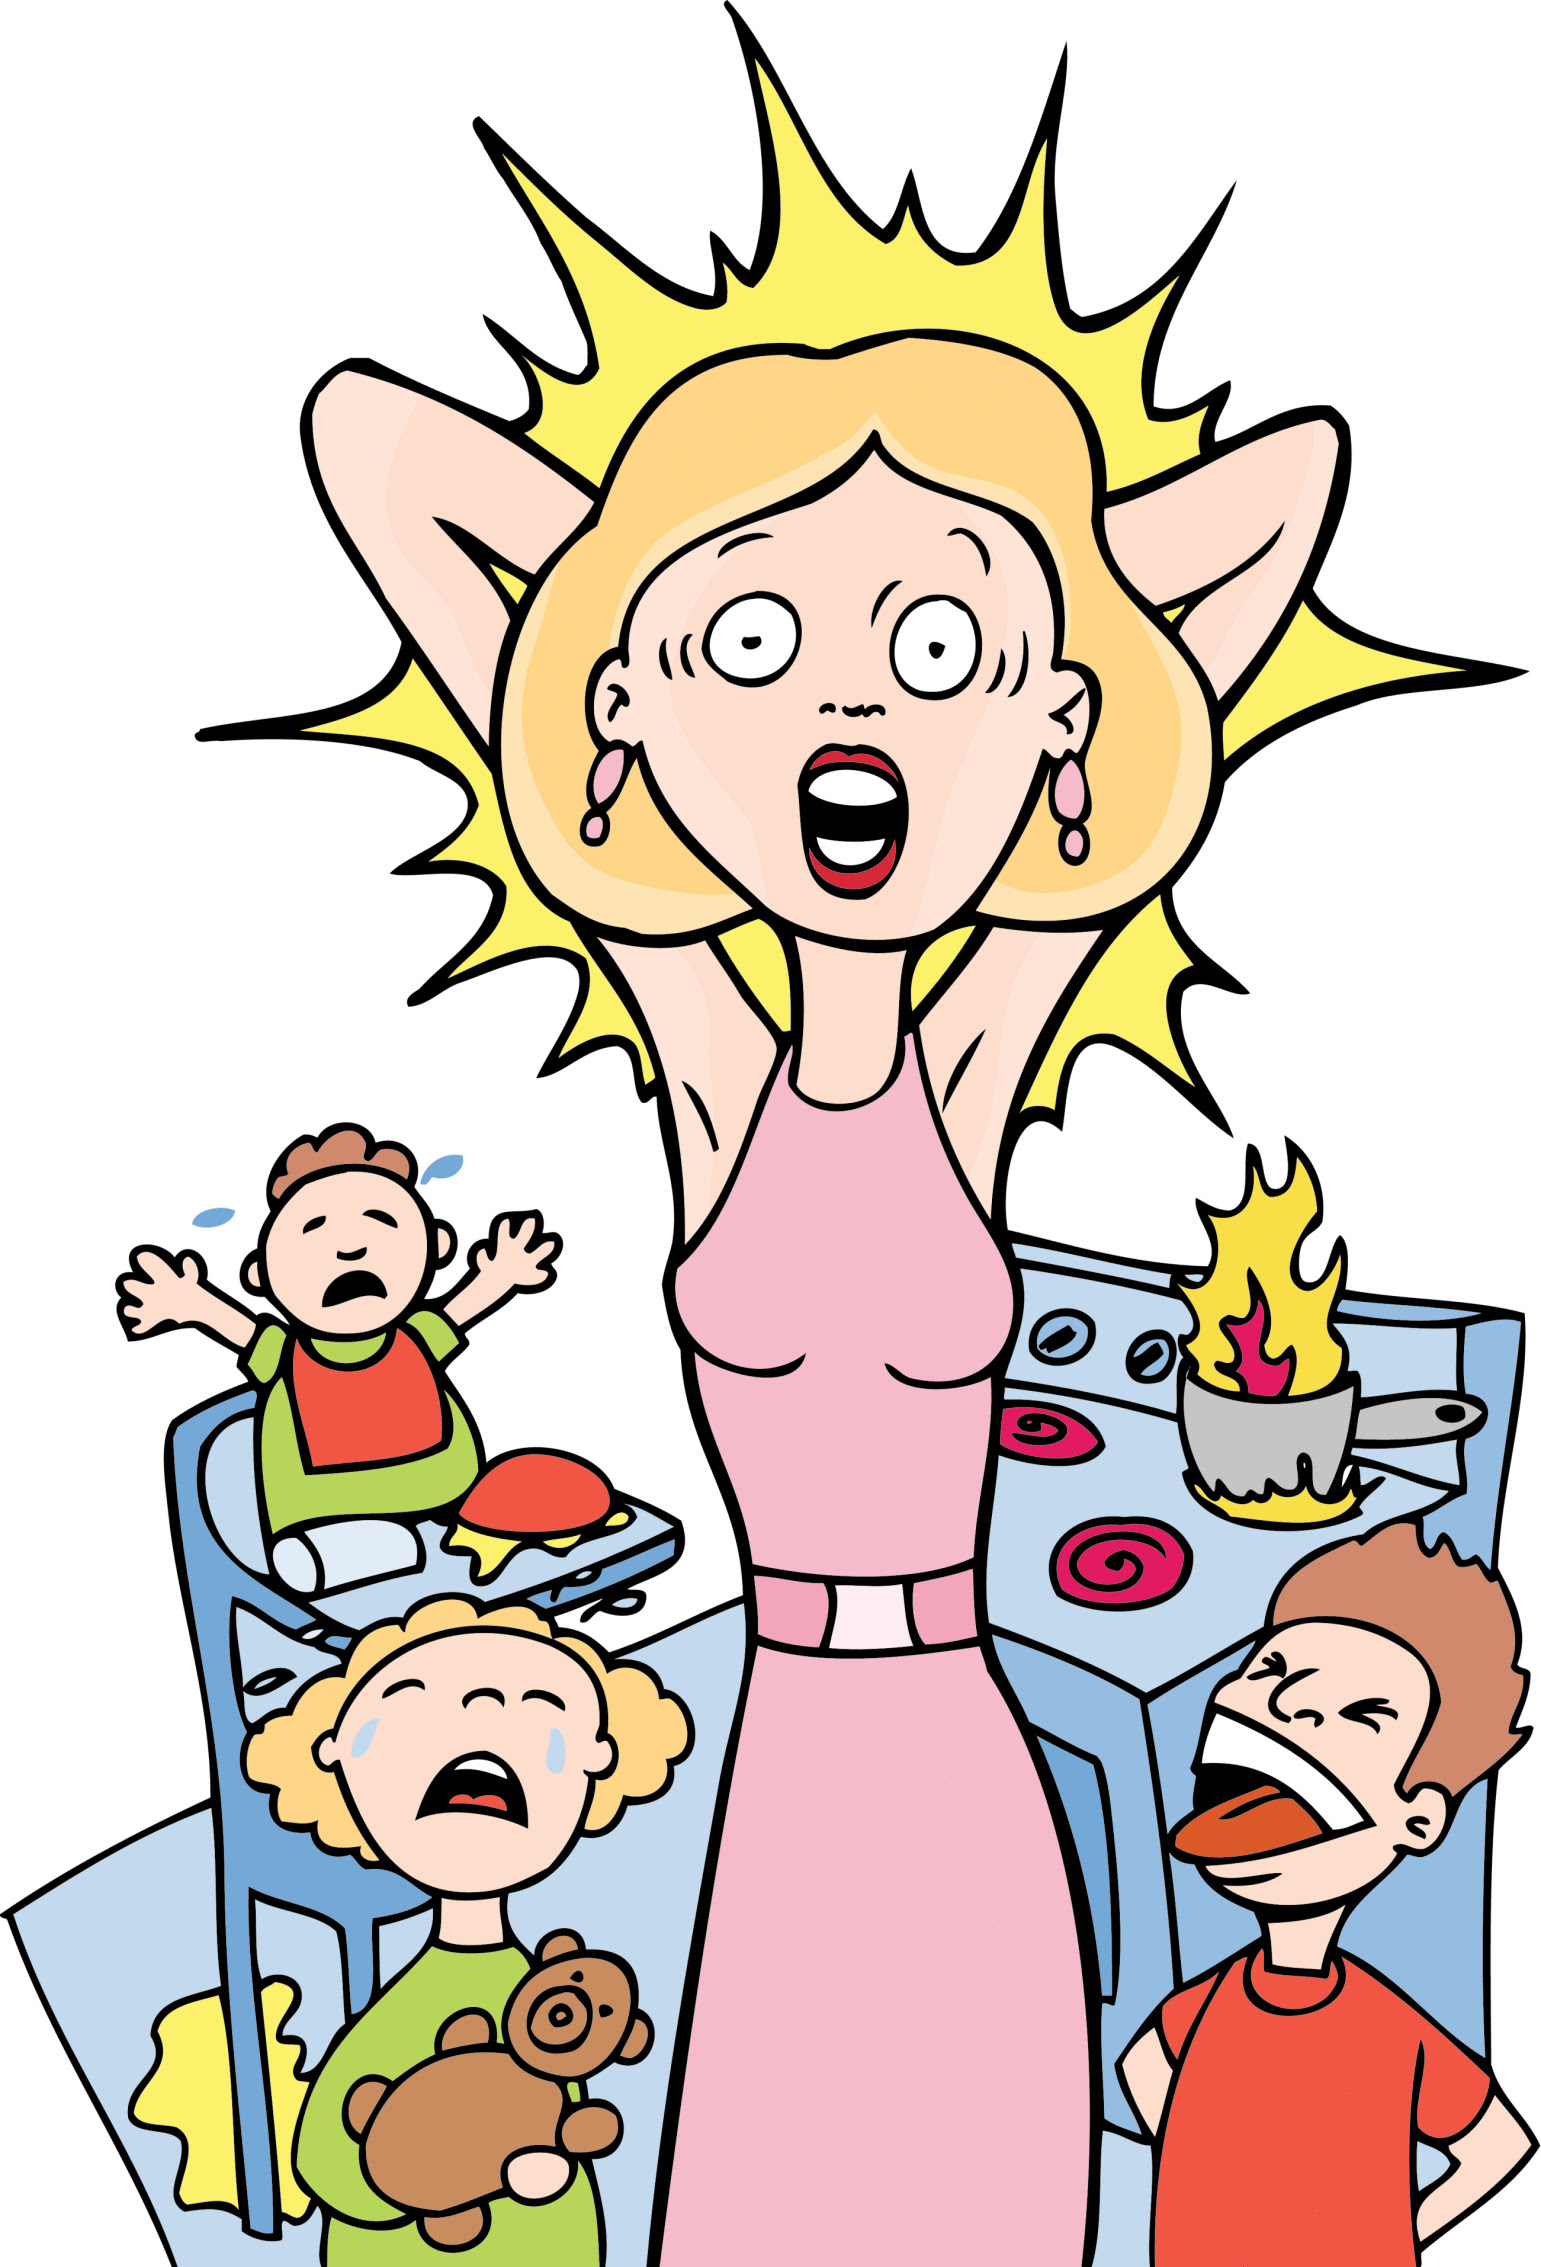 Cartoon Images Of Stress - Cliparts.co